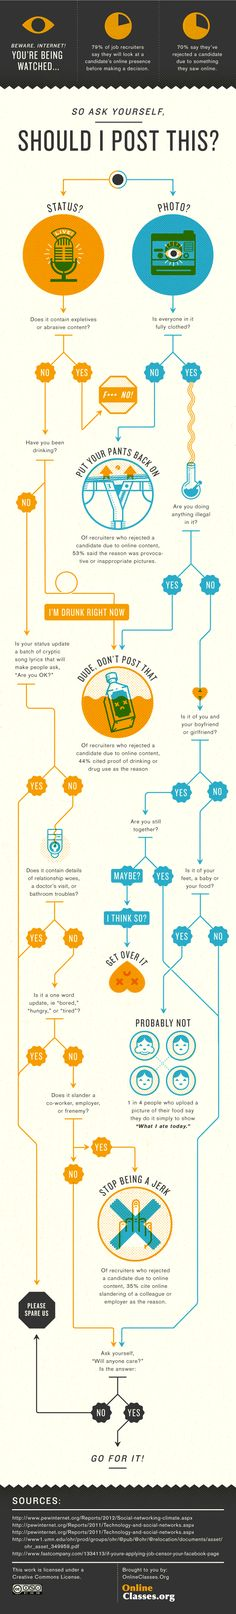 ♠ How To Decide If You Should Post Something On Social Media #Infographic